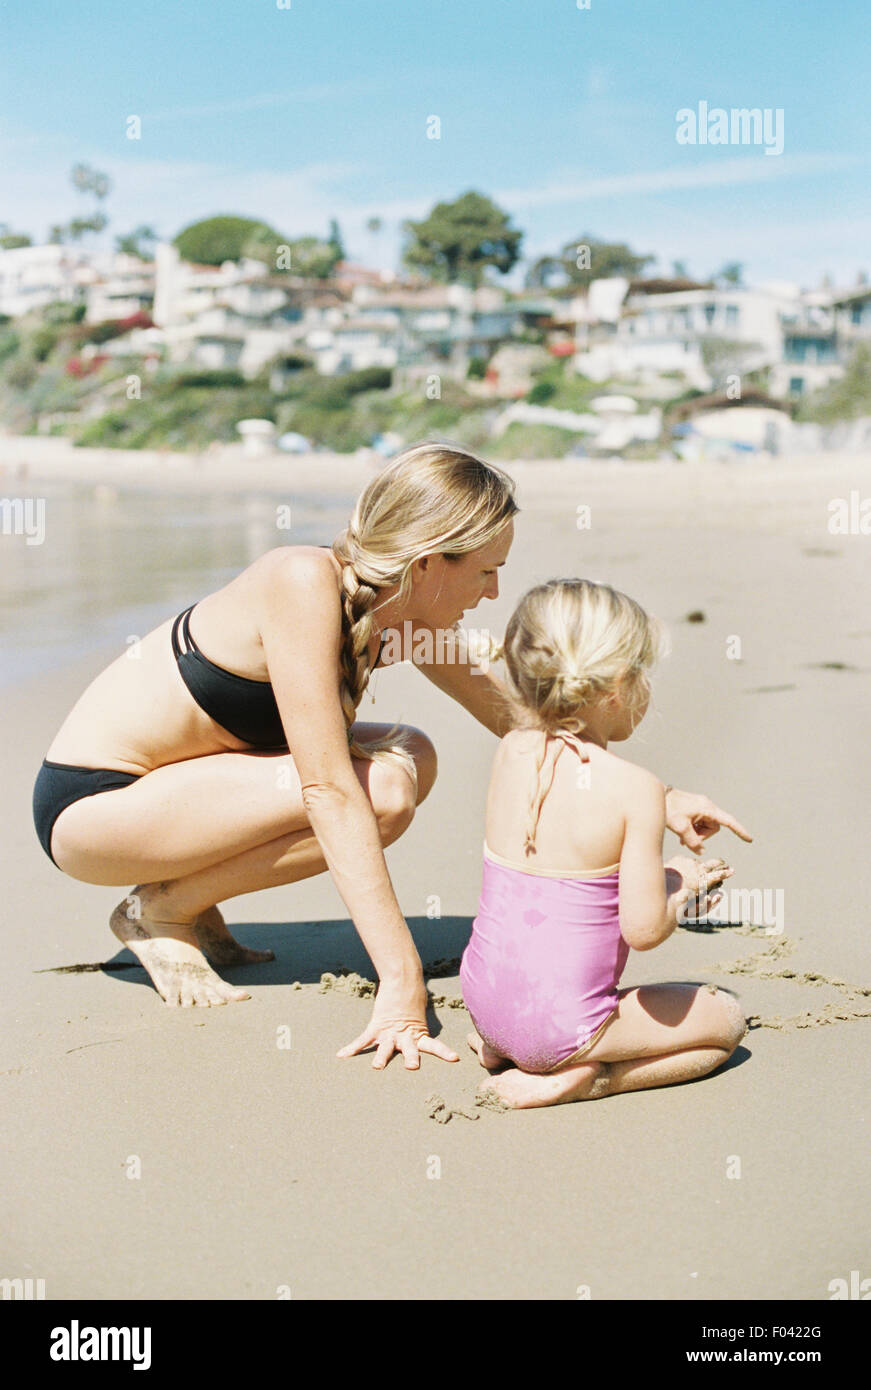 Woman in a bikini playing with her daughter on a sandy beach. - Stock Image